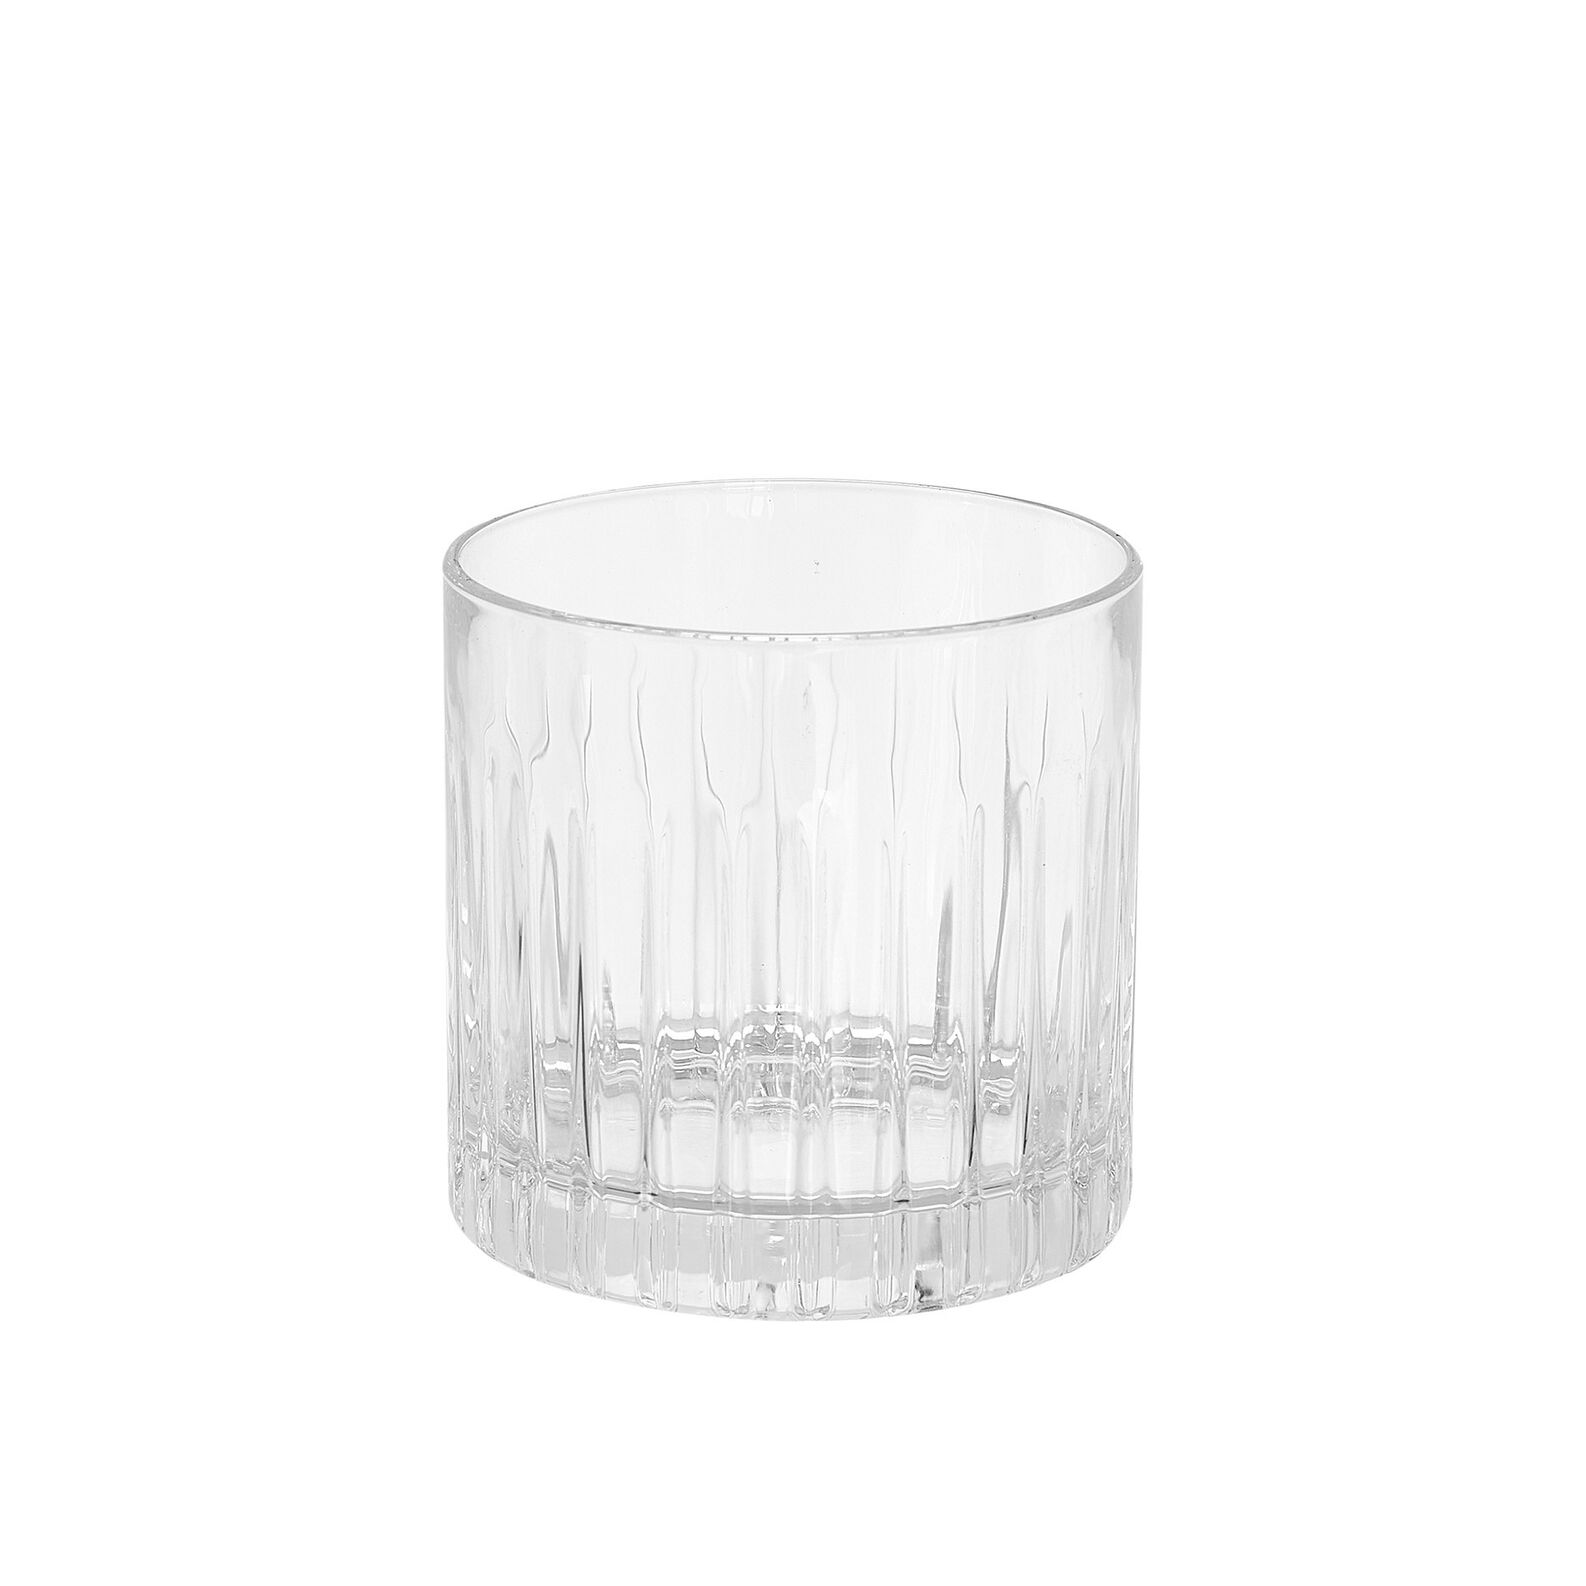 Set of 6 glass Timeless tumblers